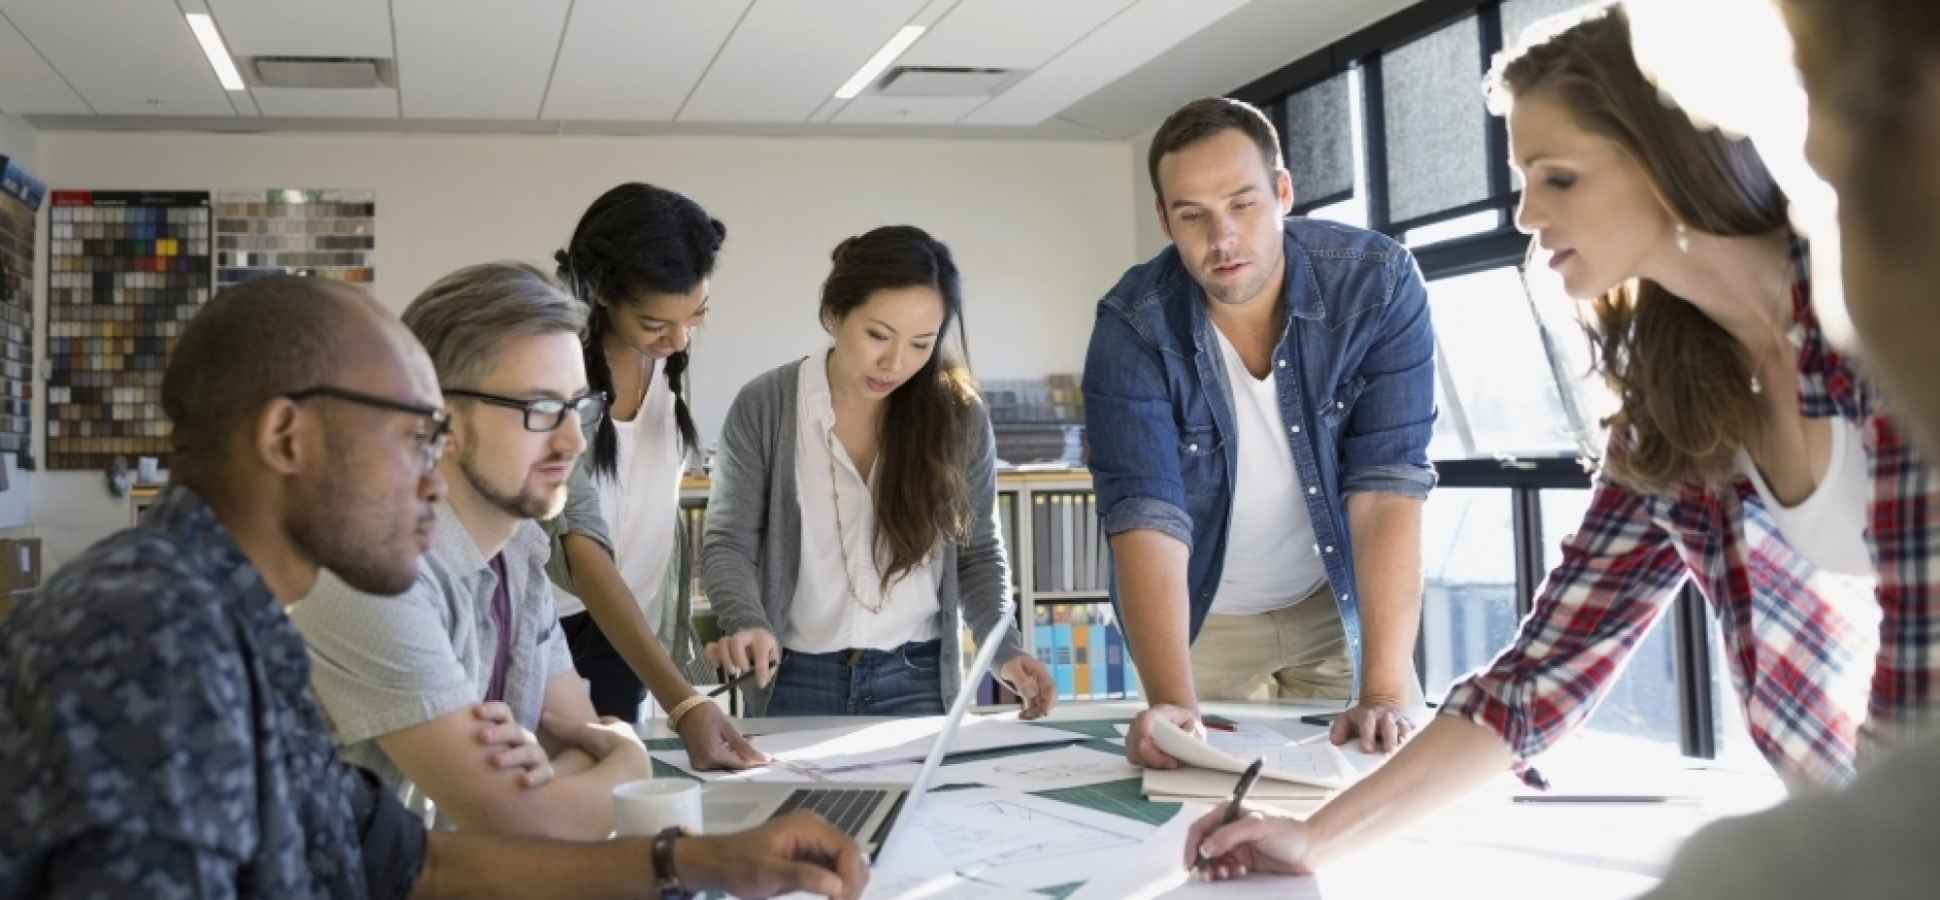 How to Ramp Up Team Productivity in Just 1 Day